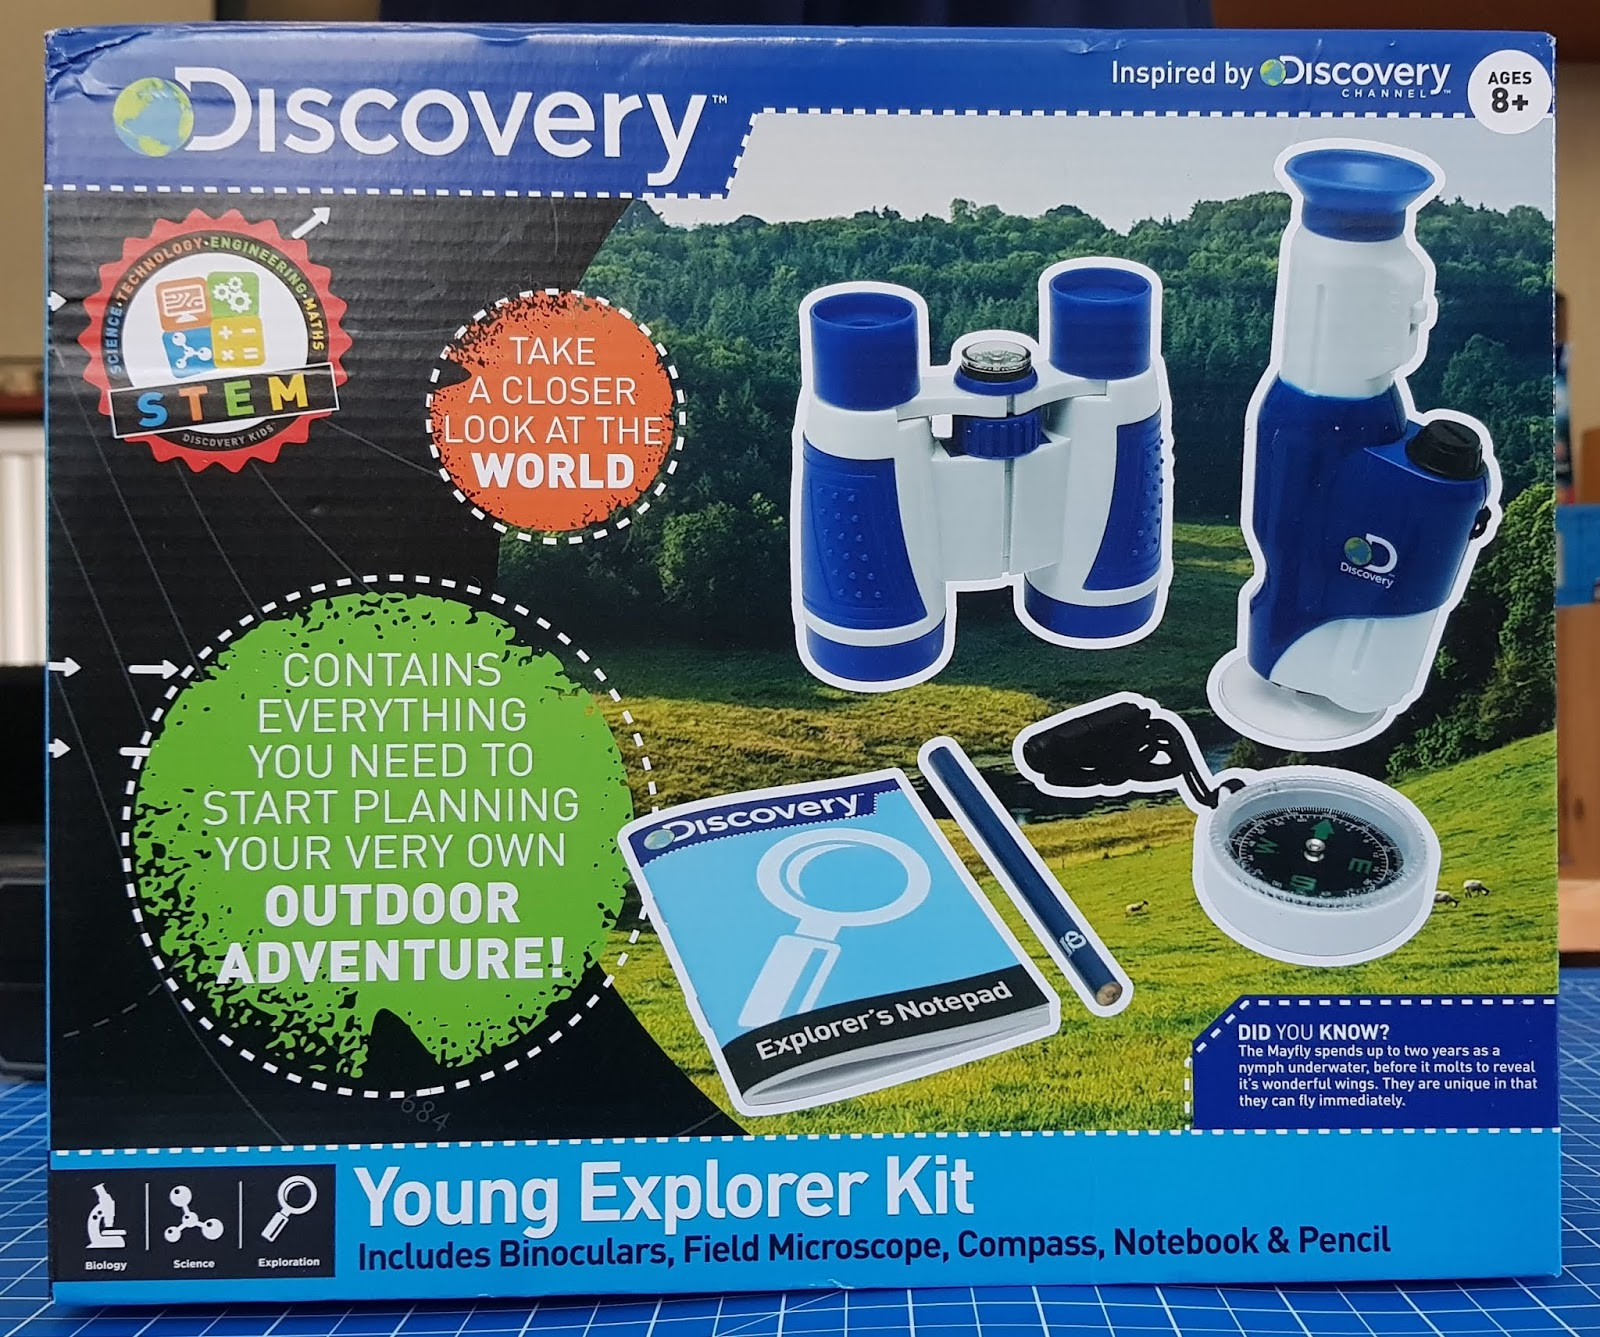 Discovery giveaways